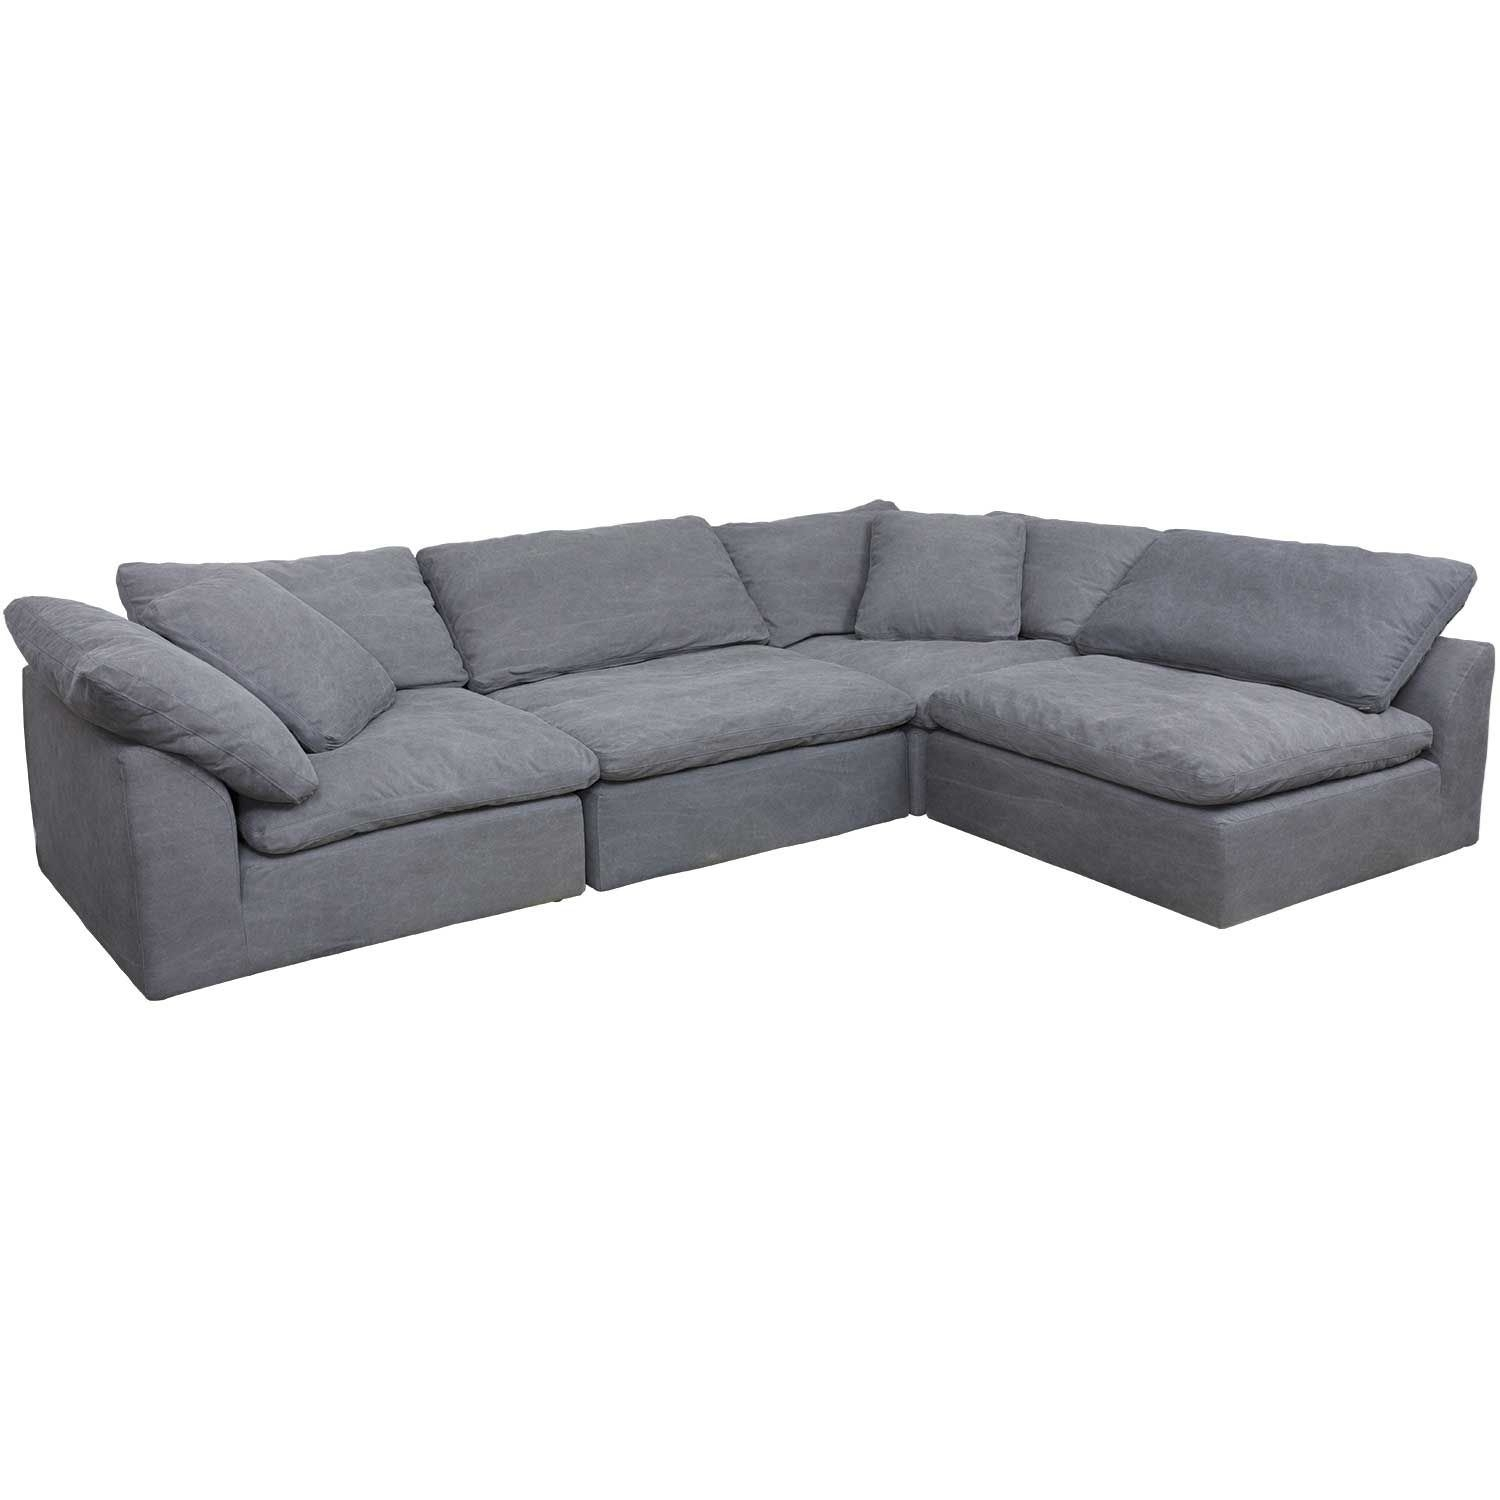 Vaughn Gray 4 Piece Sectional | 1458 51X2  37X2 | Synergy Home With Regard To Aurora 2 Piece Sectionals (Image 25 of 25)